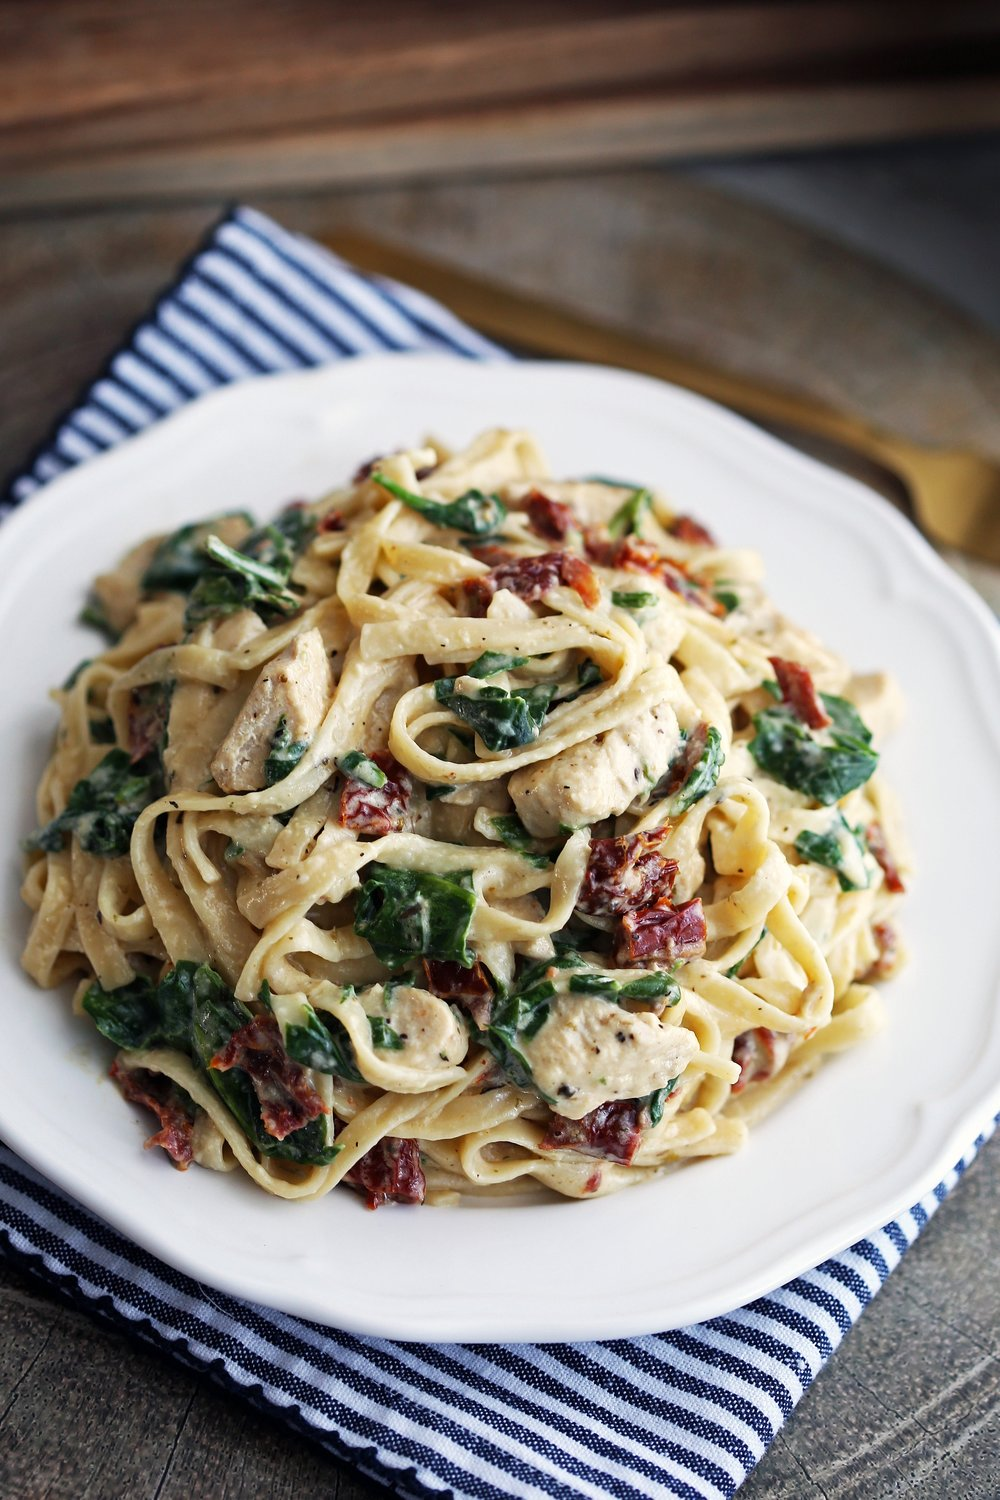 Instant Pot creamy chicken fettuccine with spinach and sun-dried tomatoes on a white plate.